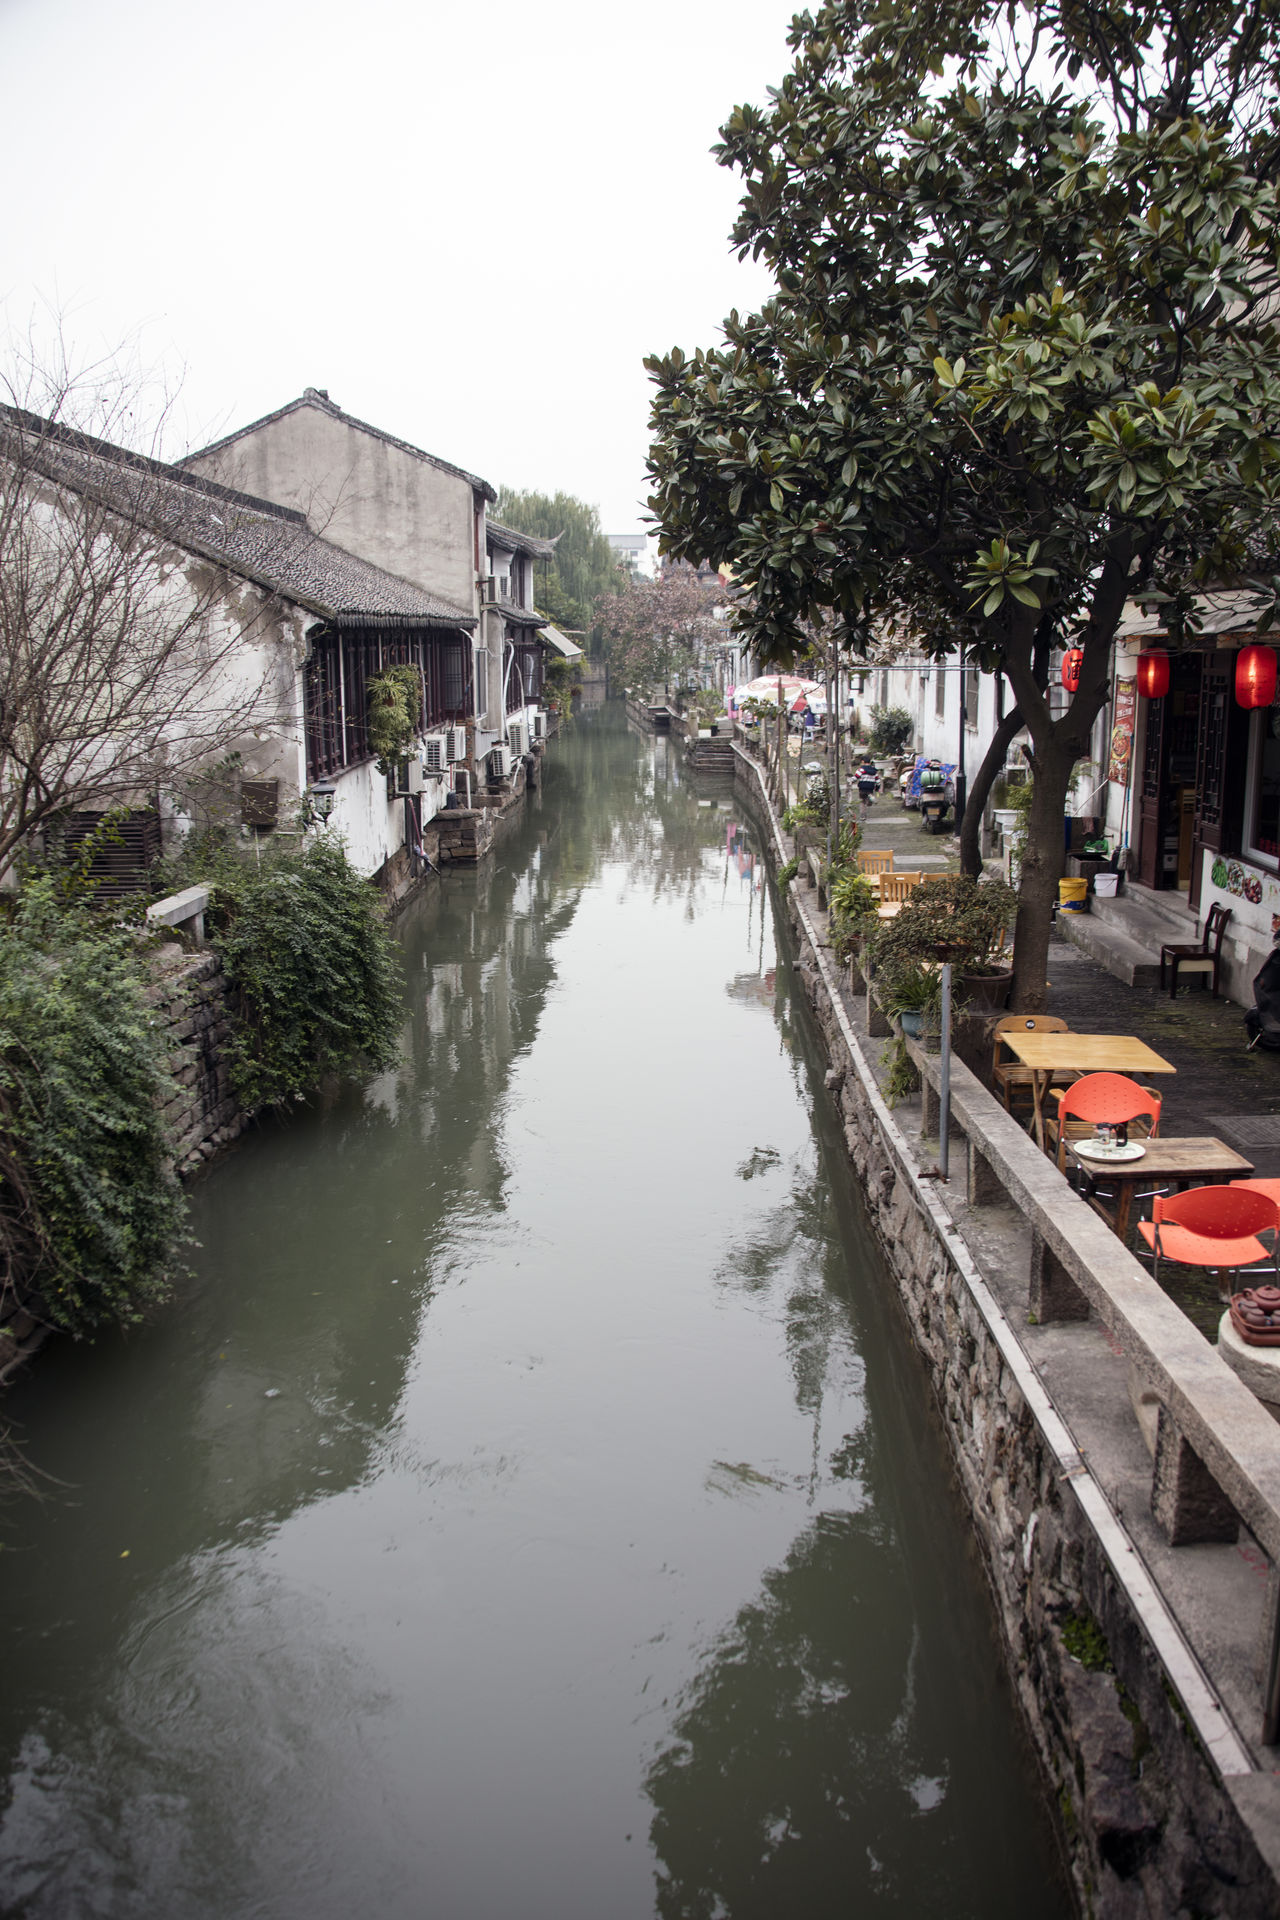 Architecture Building Exterior Canal Canon EOS 5DS China China Beauty China Culture China Photos Diminishing Perspective Ping Jiang Pingjiang PIngjiang Road Residential Structure Suzhou Suzhou China SUZHOU PINGJIANG ST Suzhou River Suzhou, China Tourism Tourist Destination Tree Venice Of The East Water